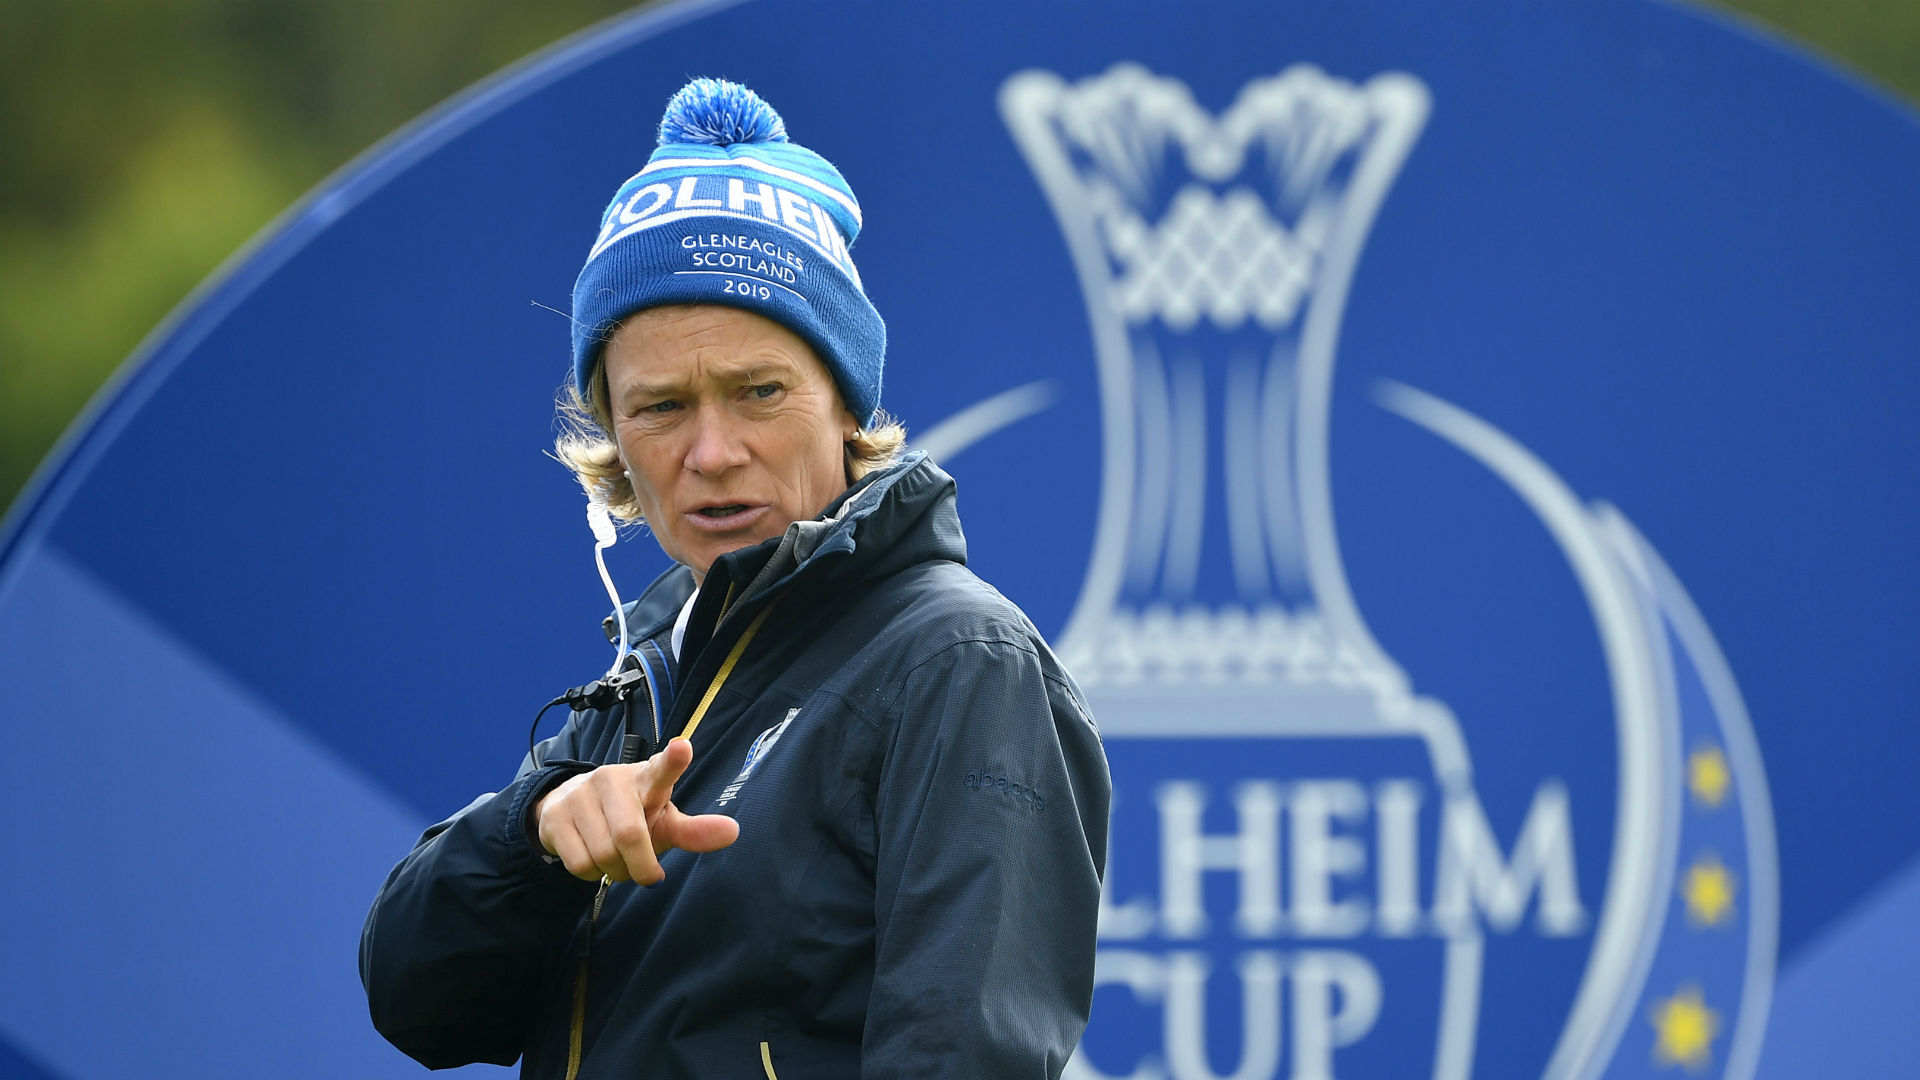 Solheim Cup: Europe captain Matthew counting on raucous Gleneagles support